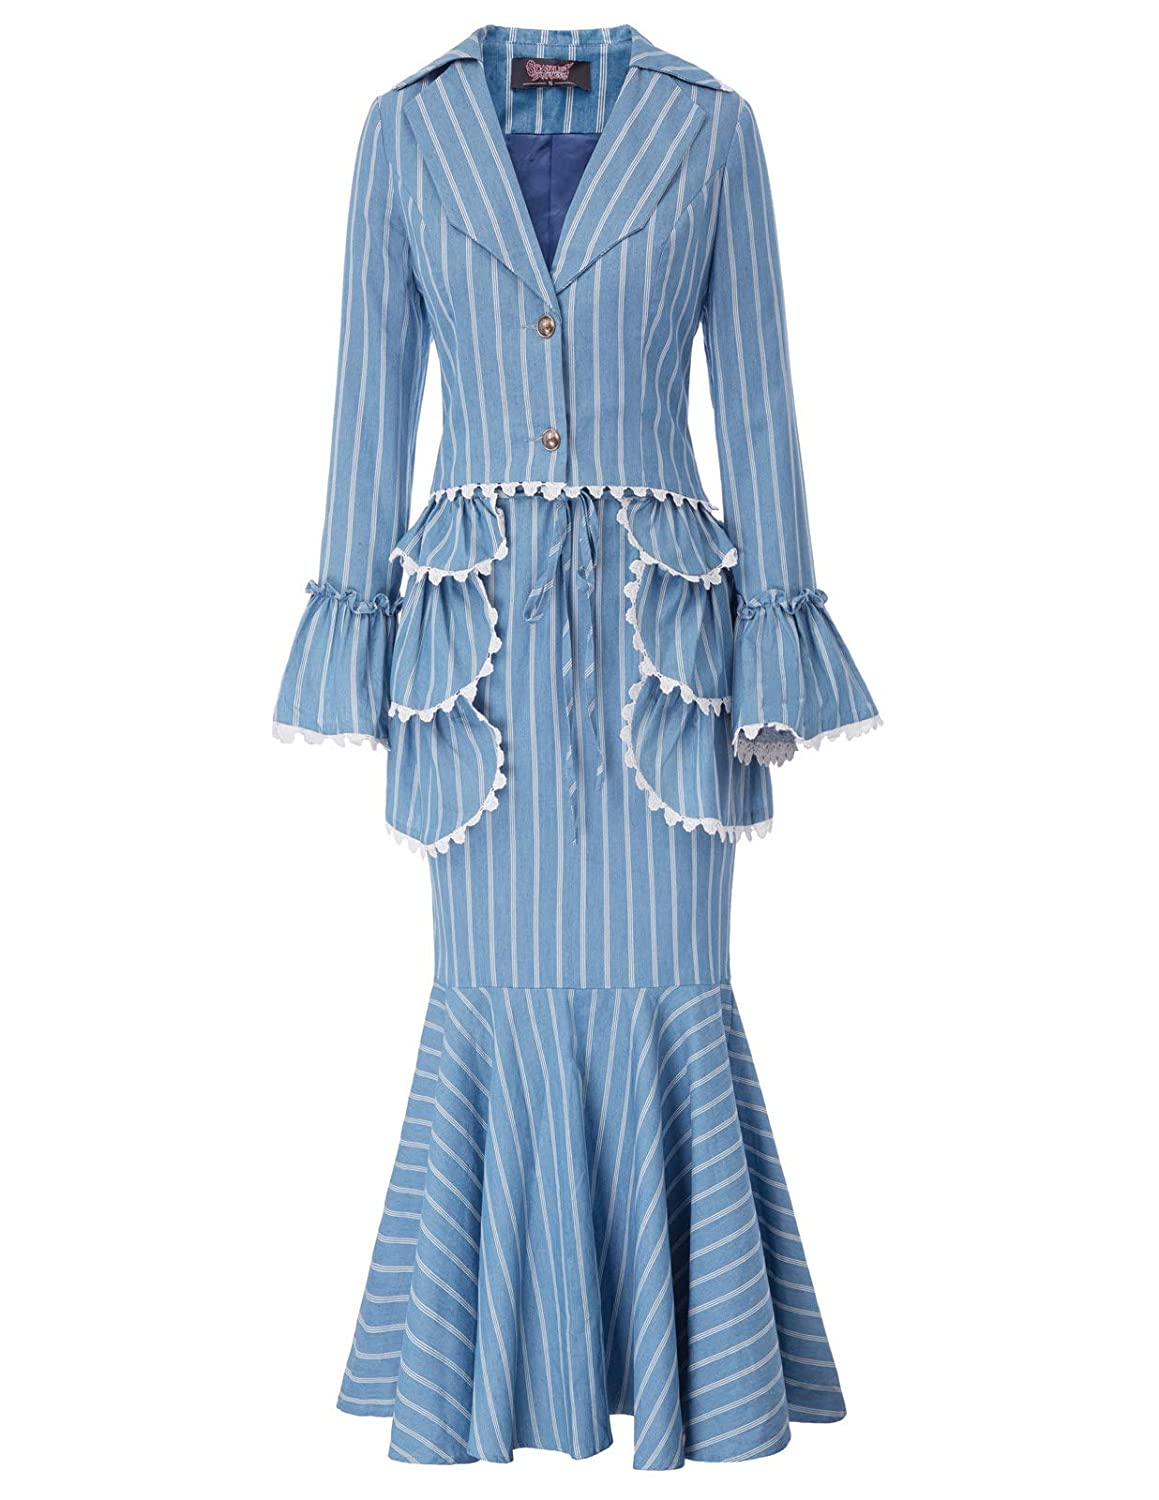 Old Fashioned Dresses | Old Dress Styles Women 3pcs Set Vintage Victorian Costume Edwardian Suit Coat+Skirt+Apron $59.99 AT vintagedancer.com